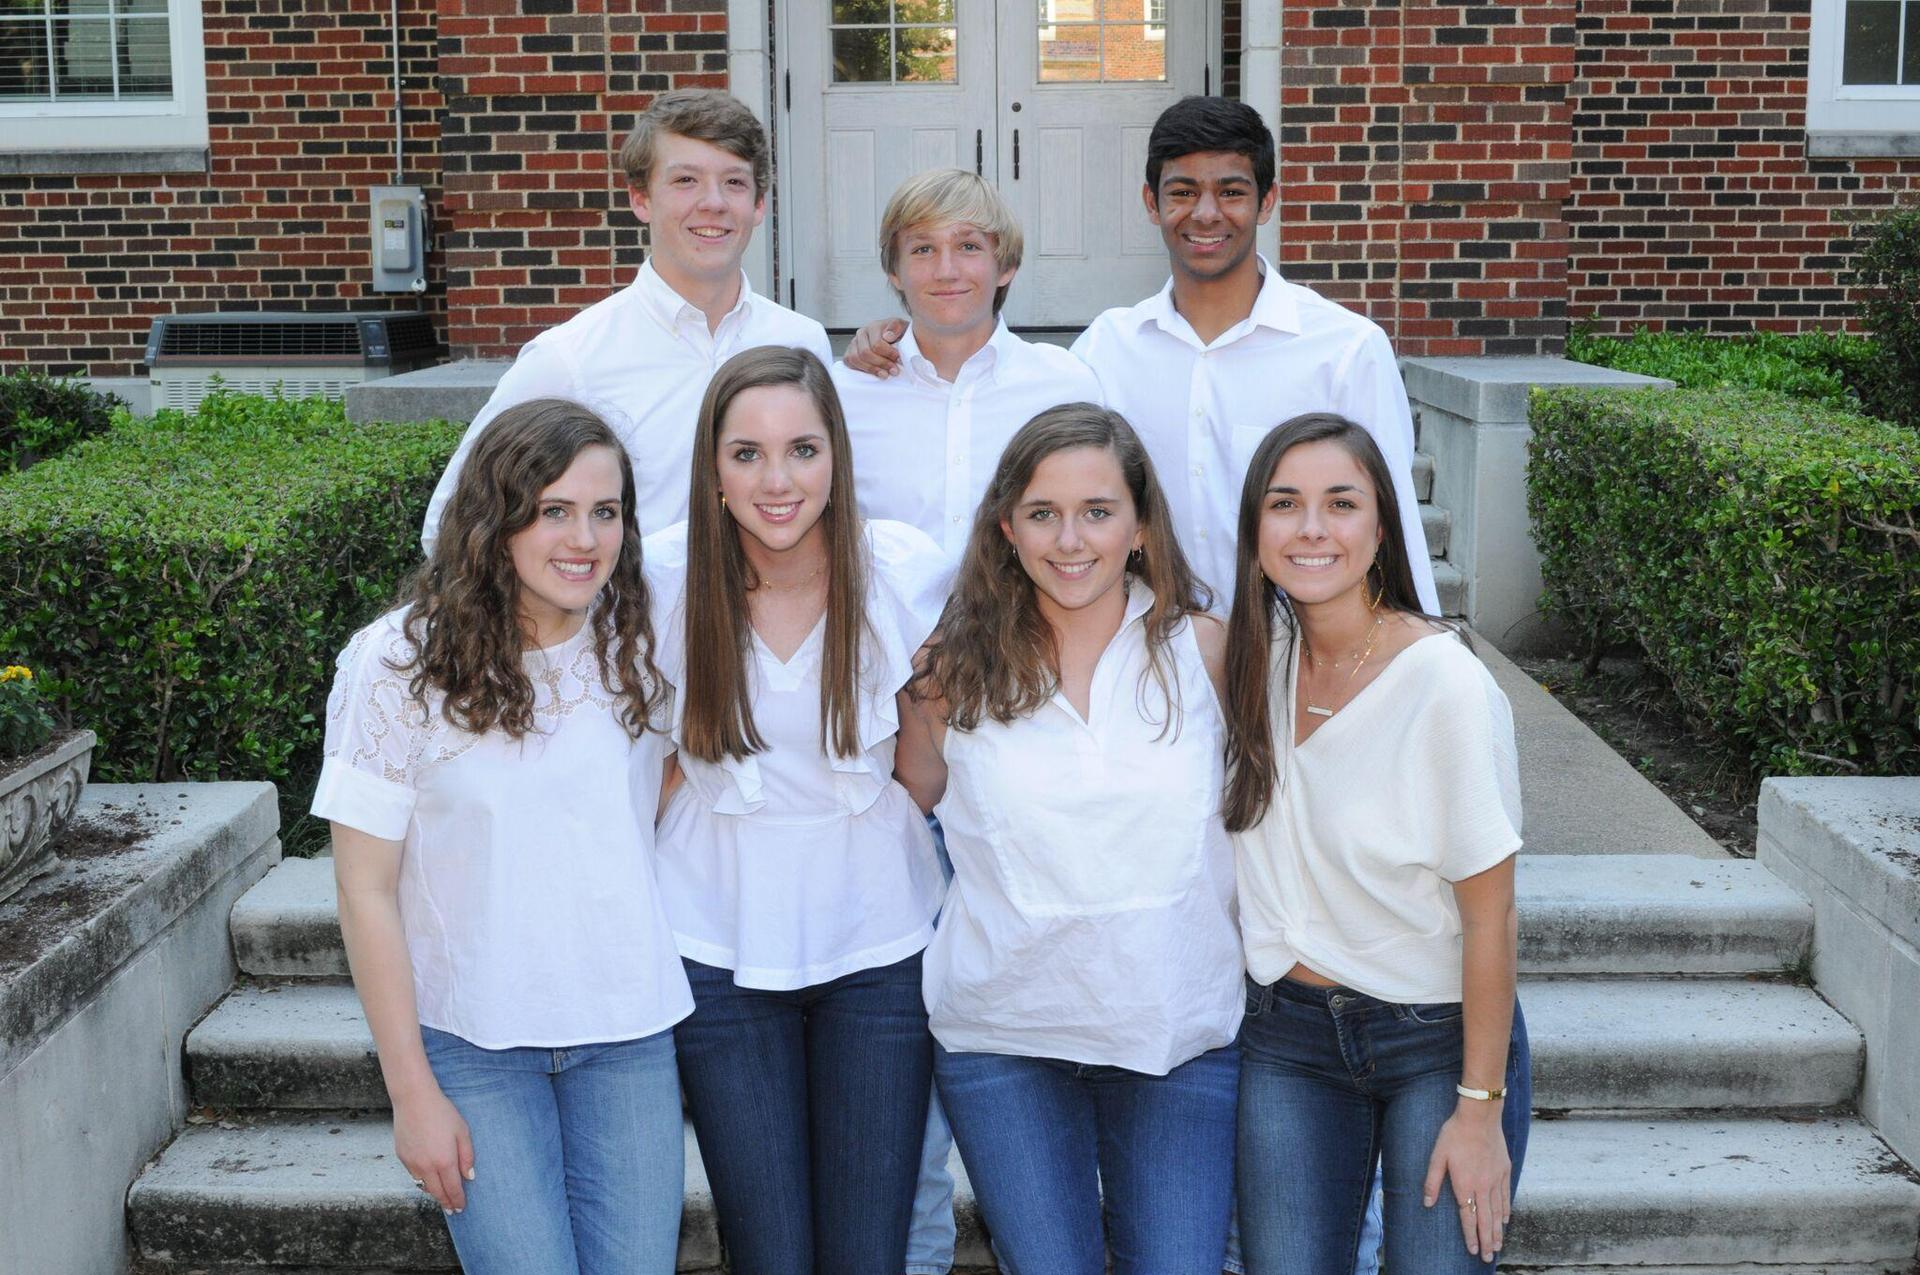 Student council executive officers